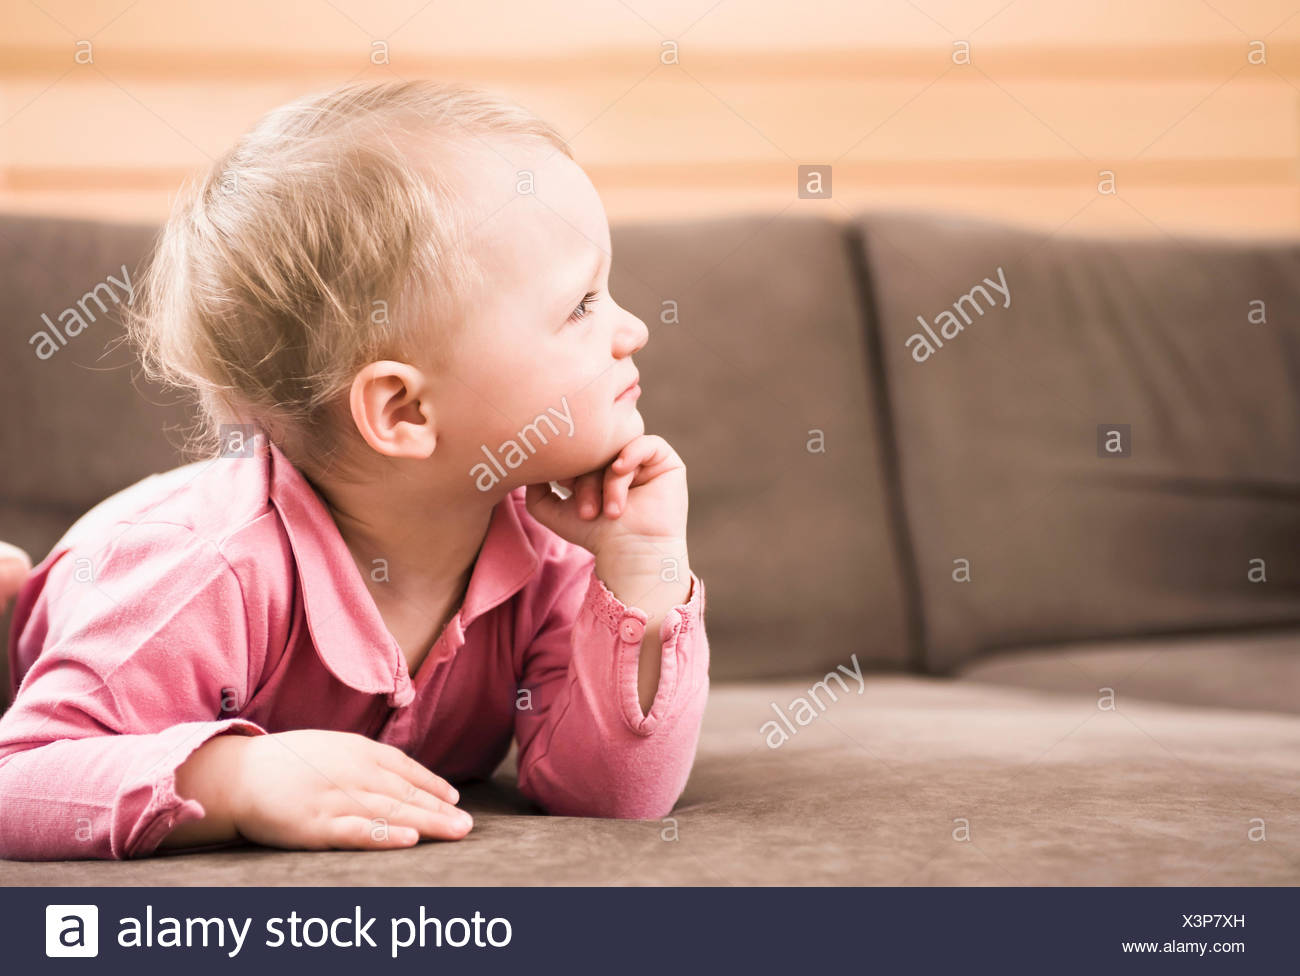 Baby girl lying sofa on thinking side profile - Stock Image